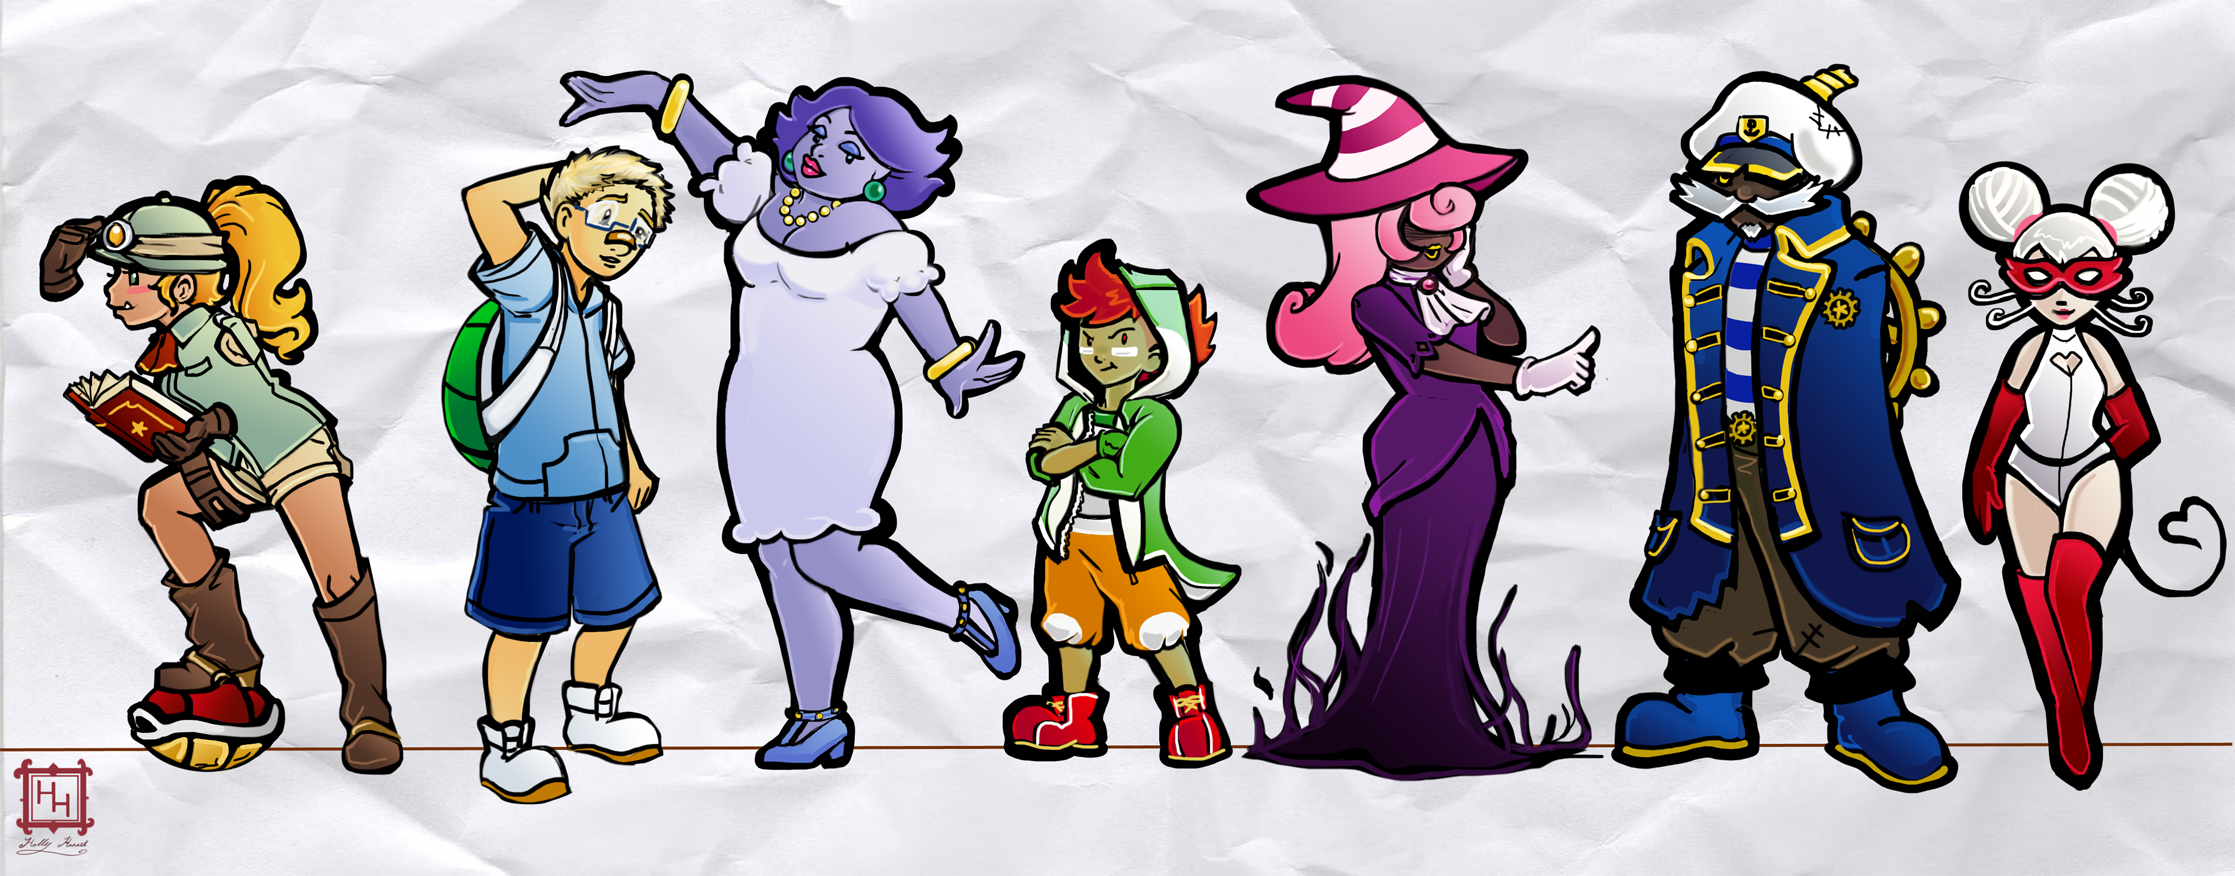 paper mario ttyd partners by madame origami on newgrounds